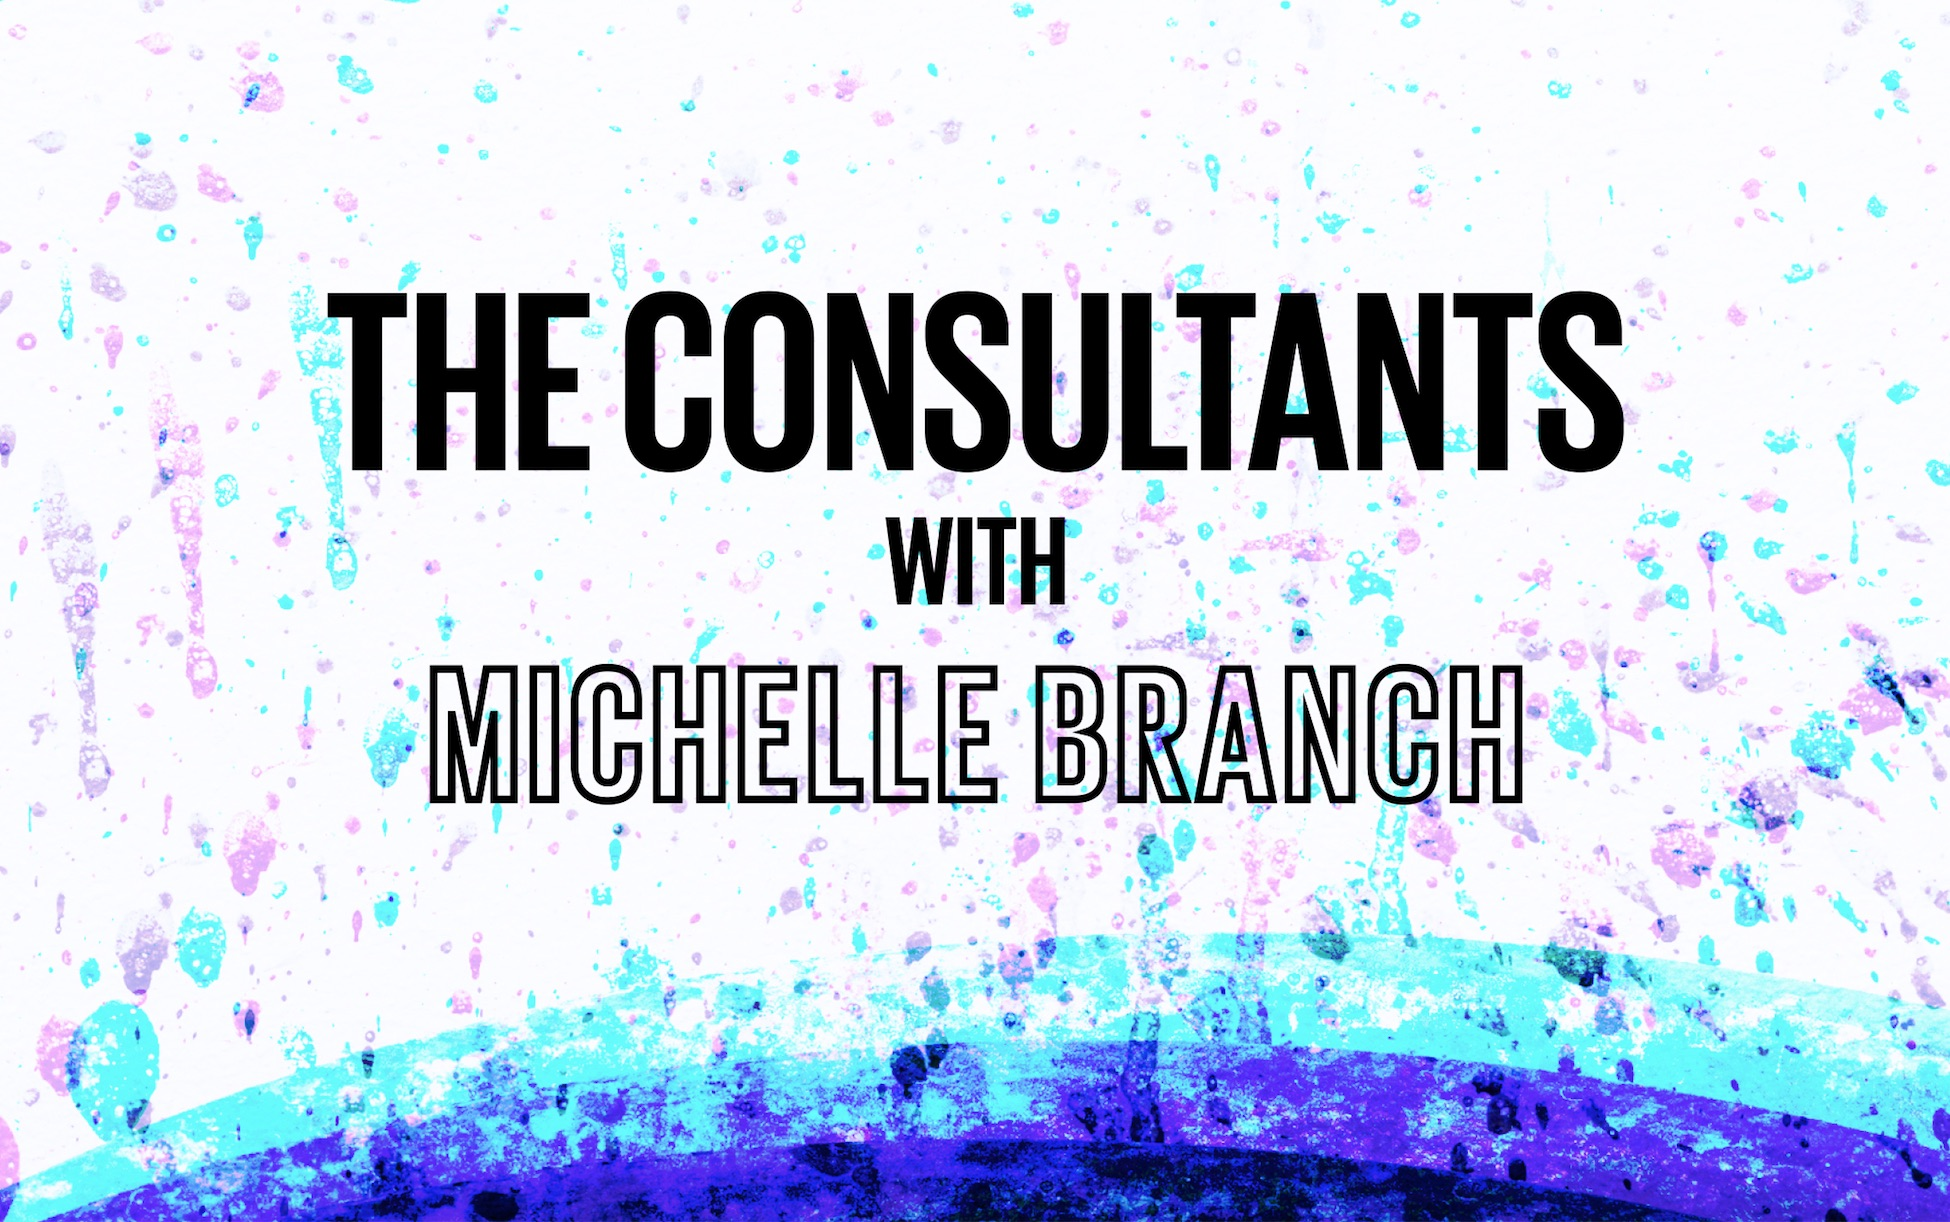 Michelle Branch, founder and creative director of Markt&Twigs Inc., discusses the importance of collaboration during uncertain times.